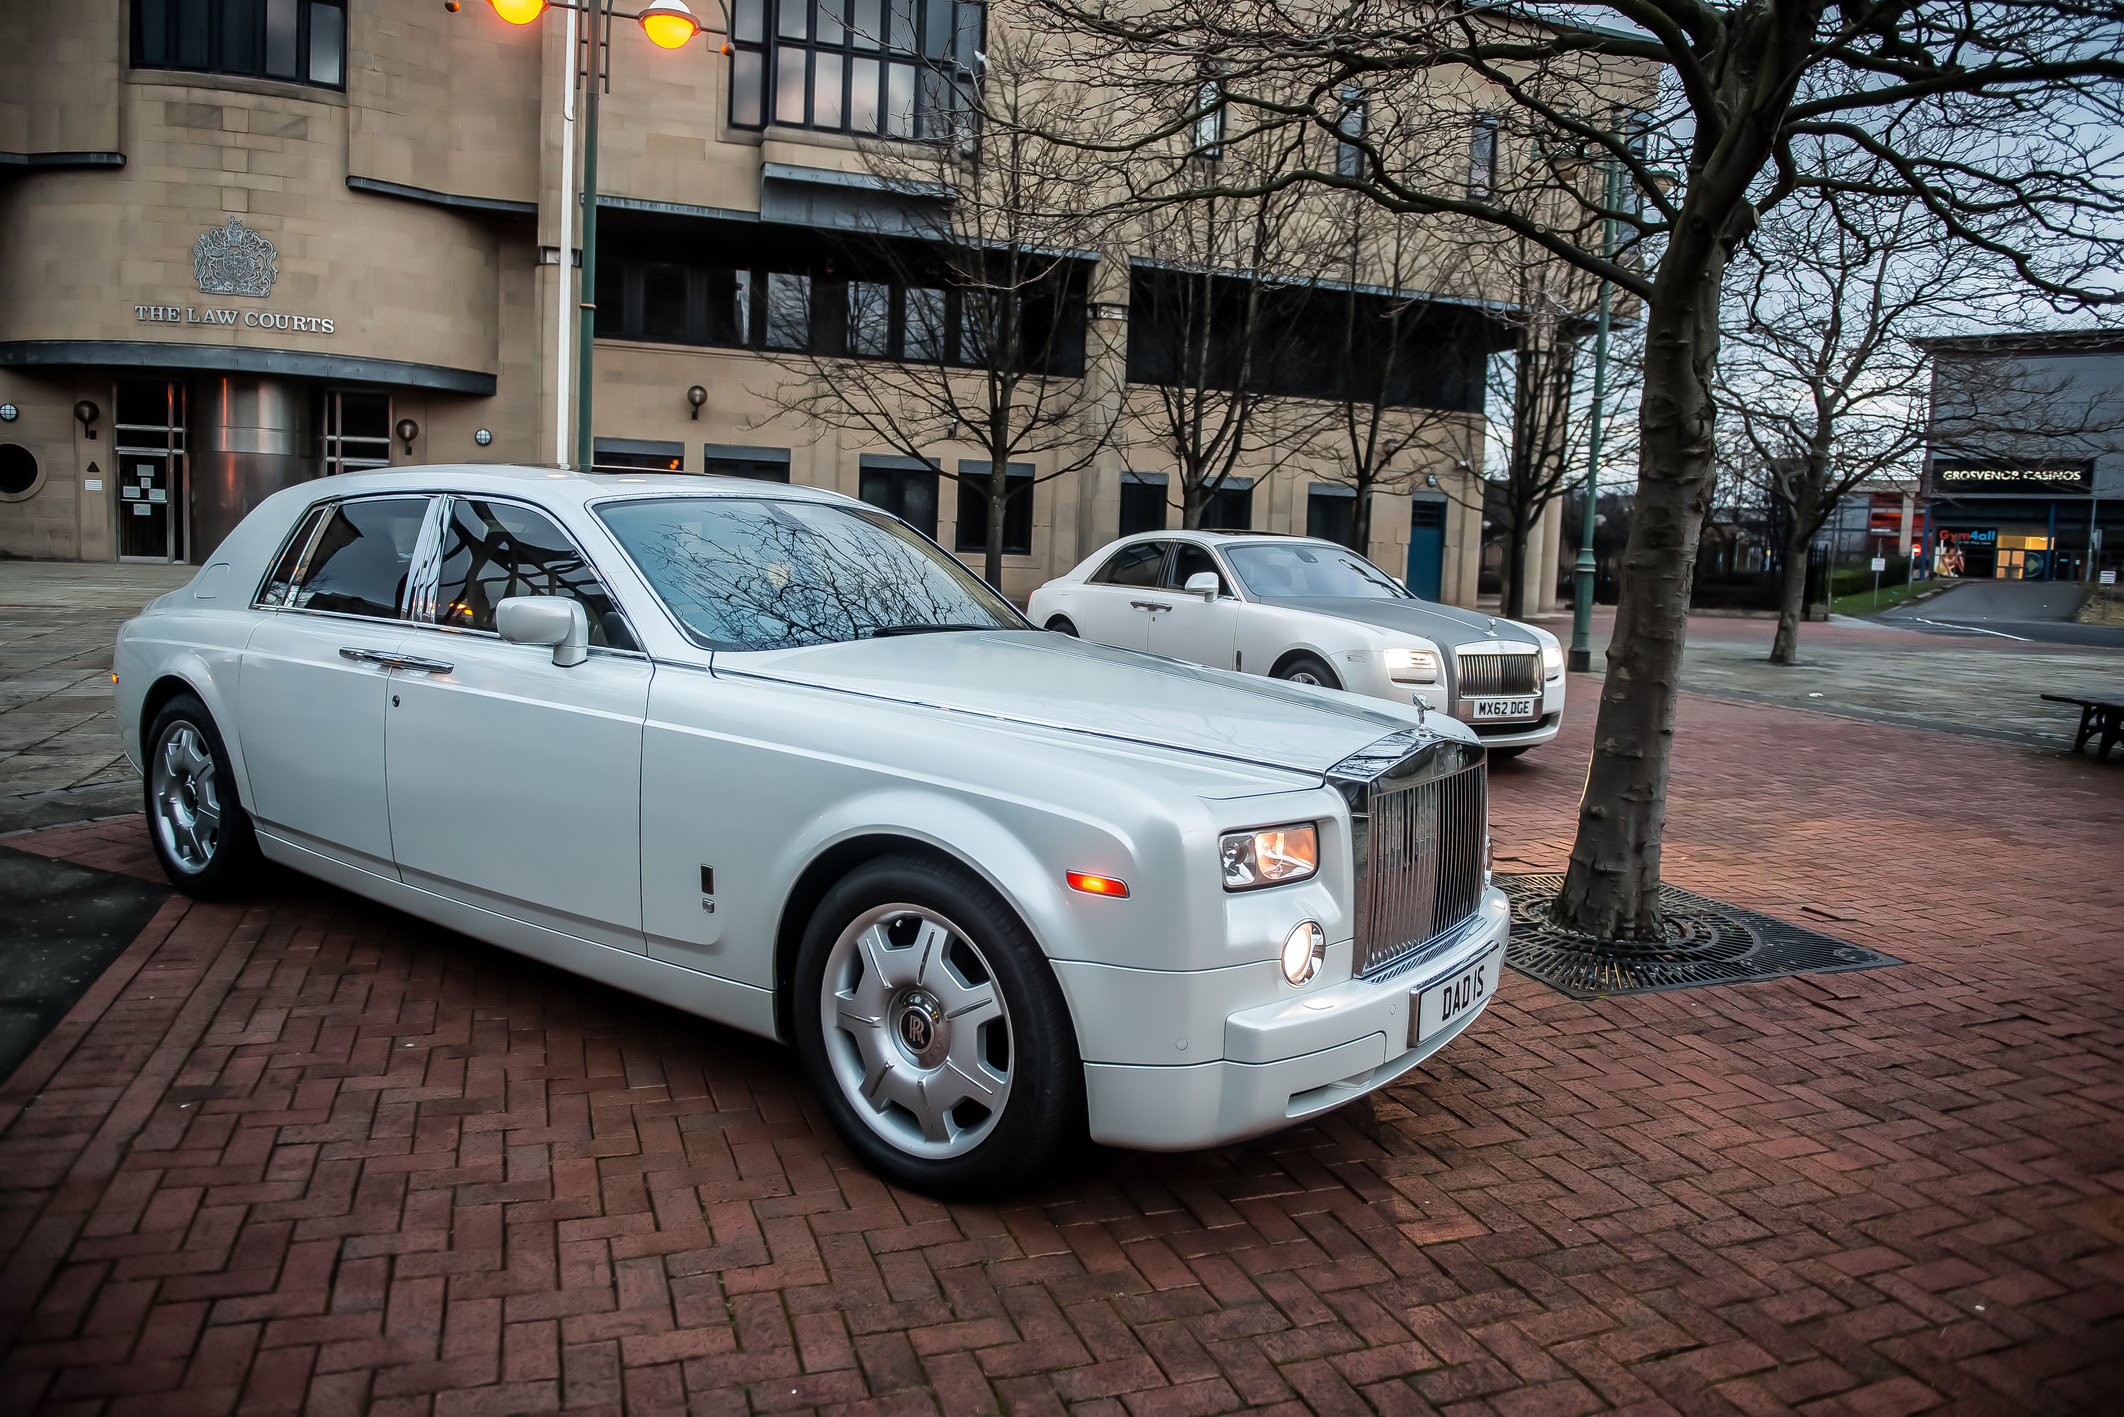 Platinum Rolls Royce Phantom Hire Leeds